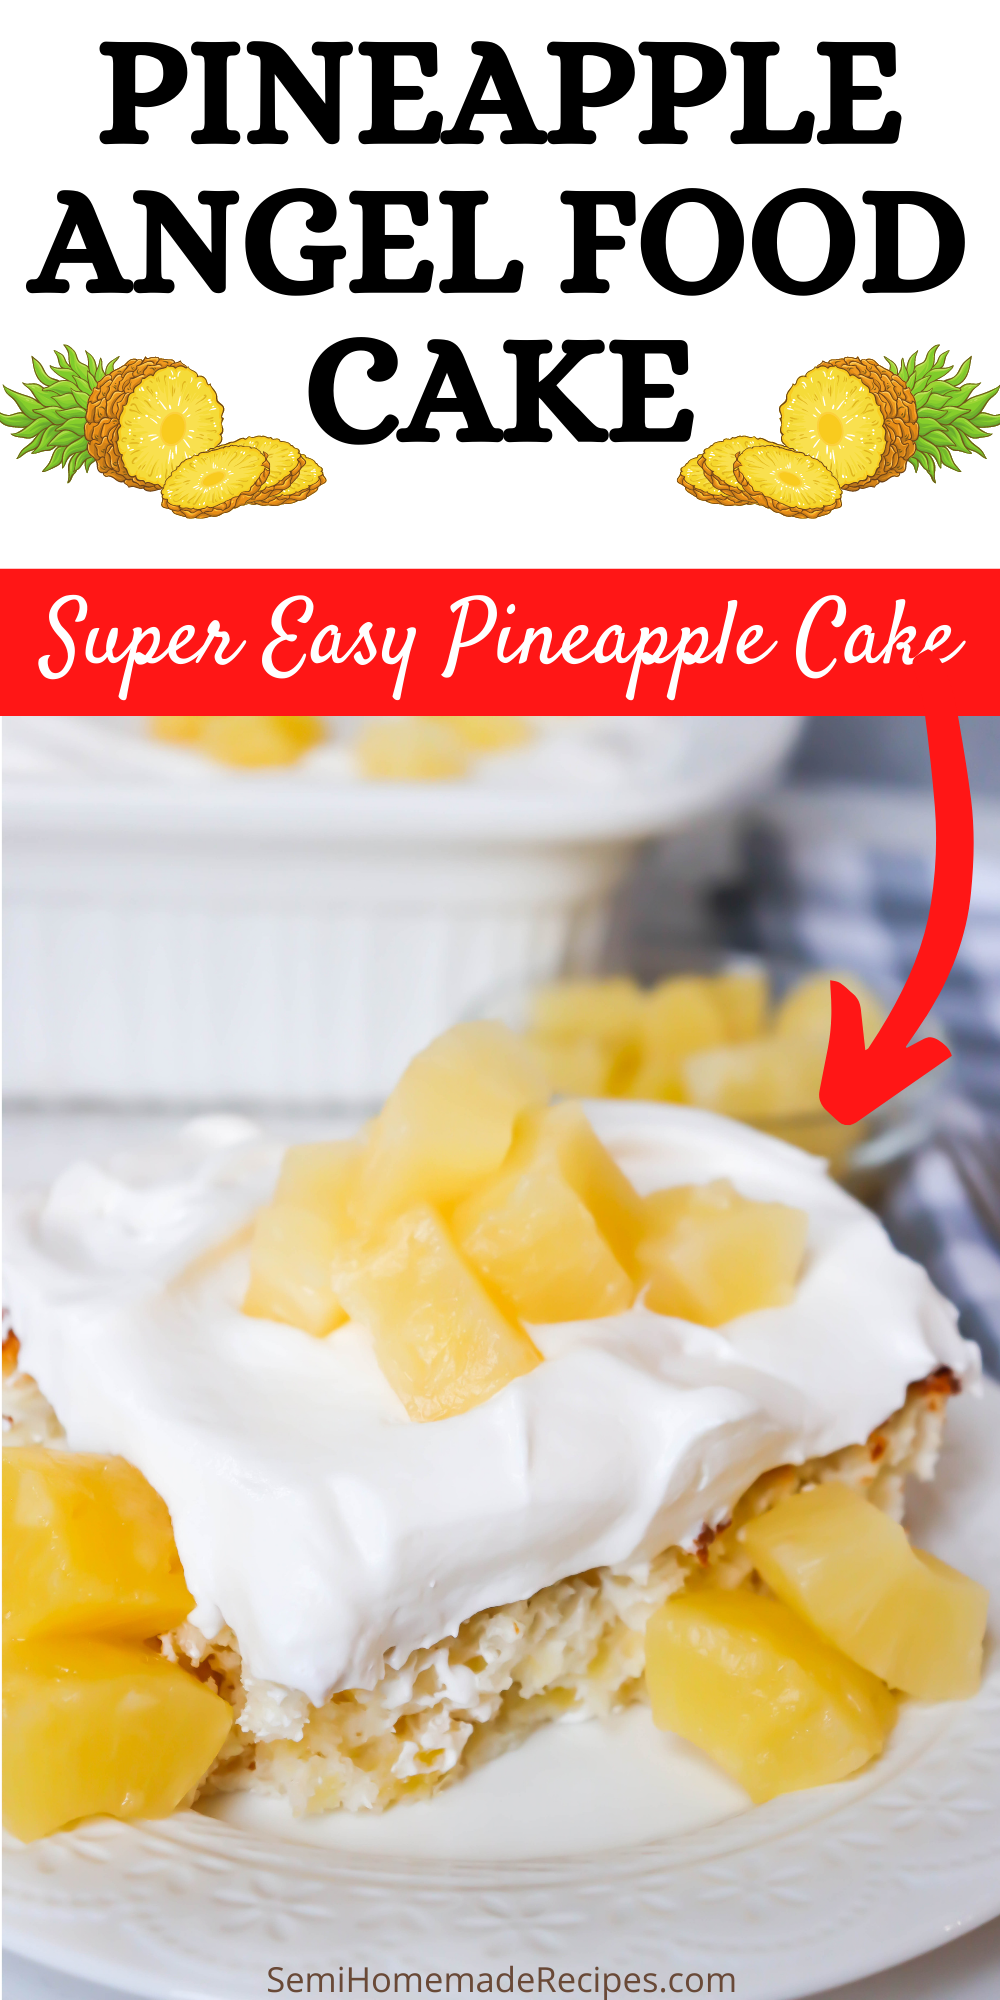 You'll love how easy this Pineapple Angel Food Cake is to make! 3 ingredients is all you need for this pineapple infused cake!